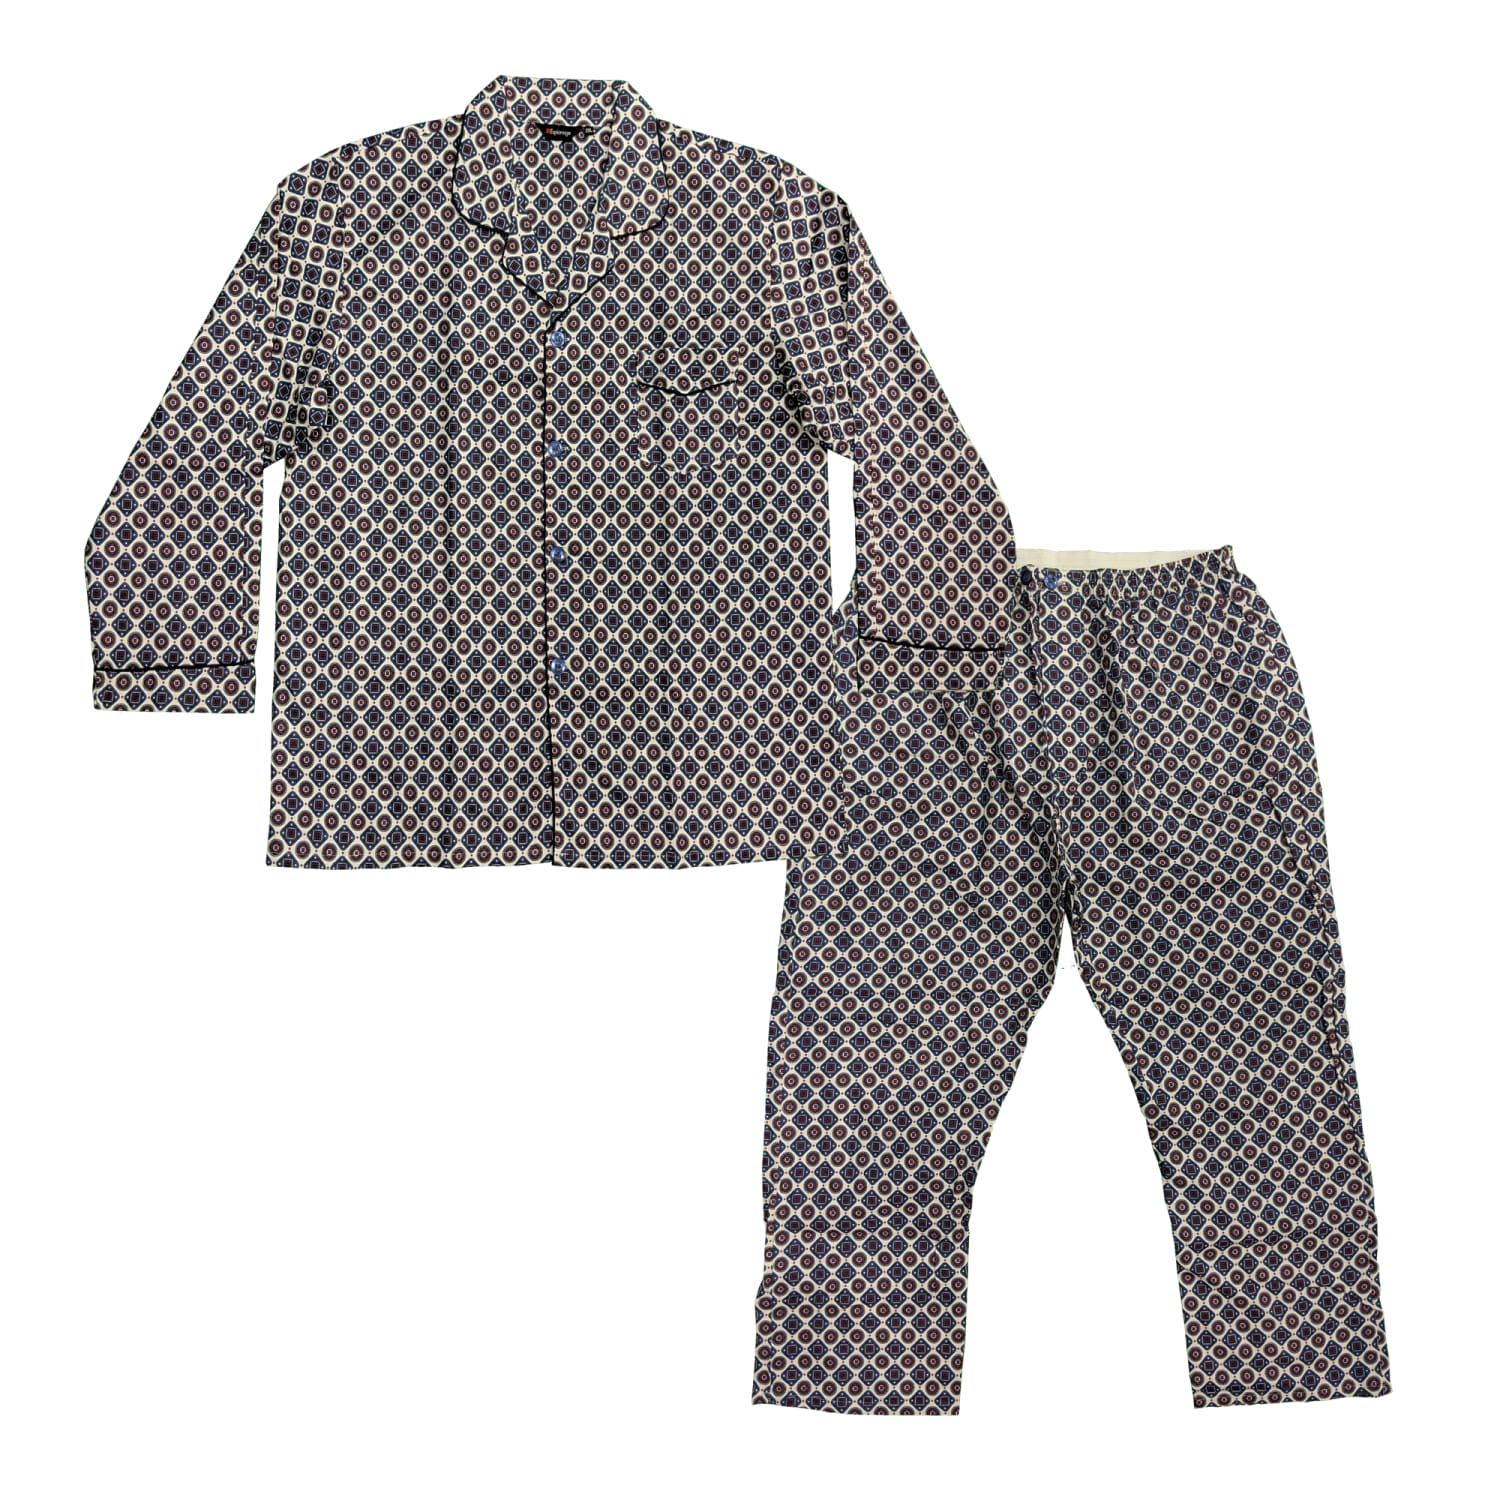 Espionage Brushed Cotton PJs (Shirt & Trousers) - PJ055 - White / Blue / Red 1